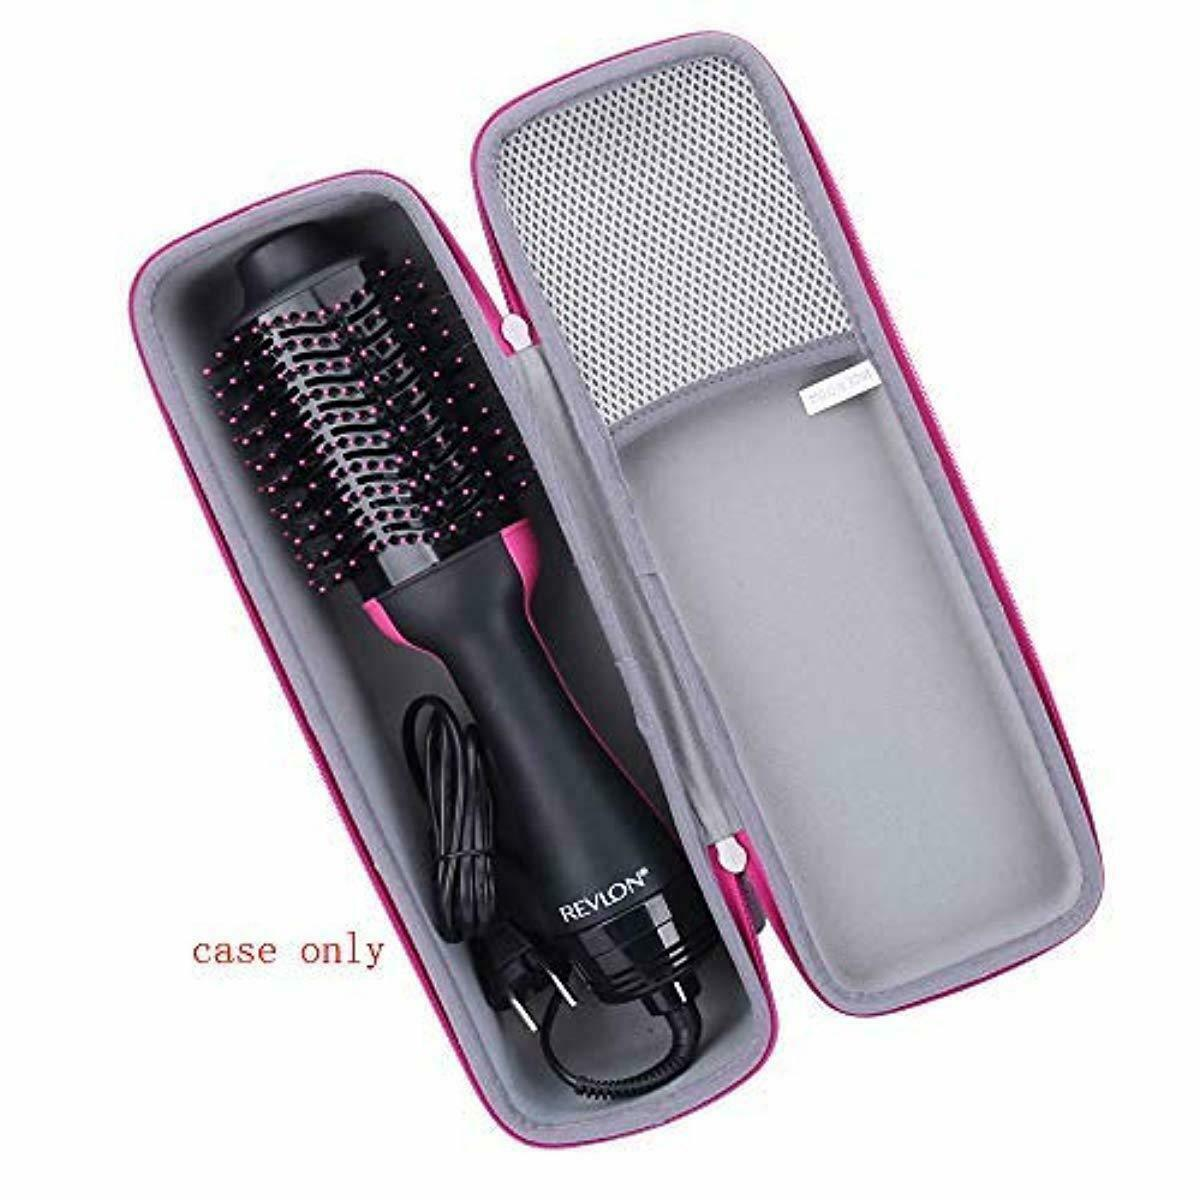 Aenllosi Hard Travel Case for Revlon One-Step Hair Dryer & V